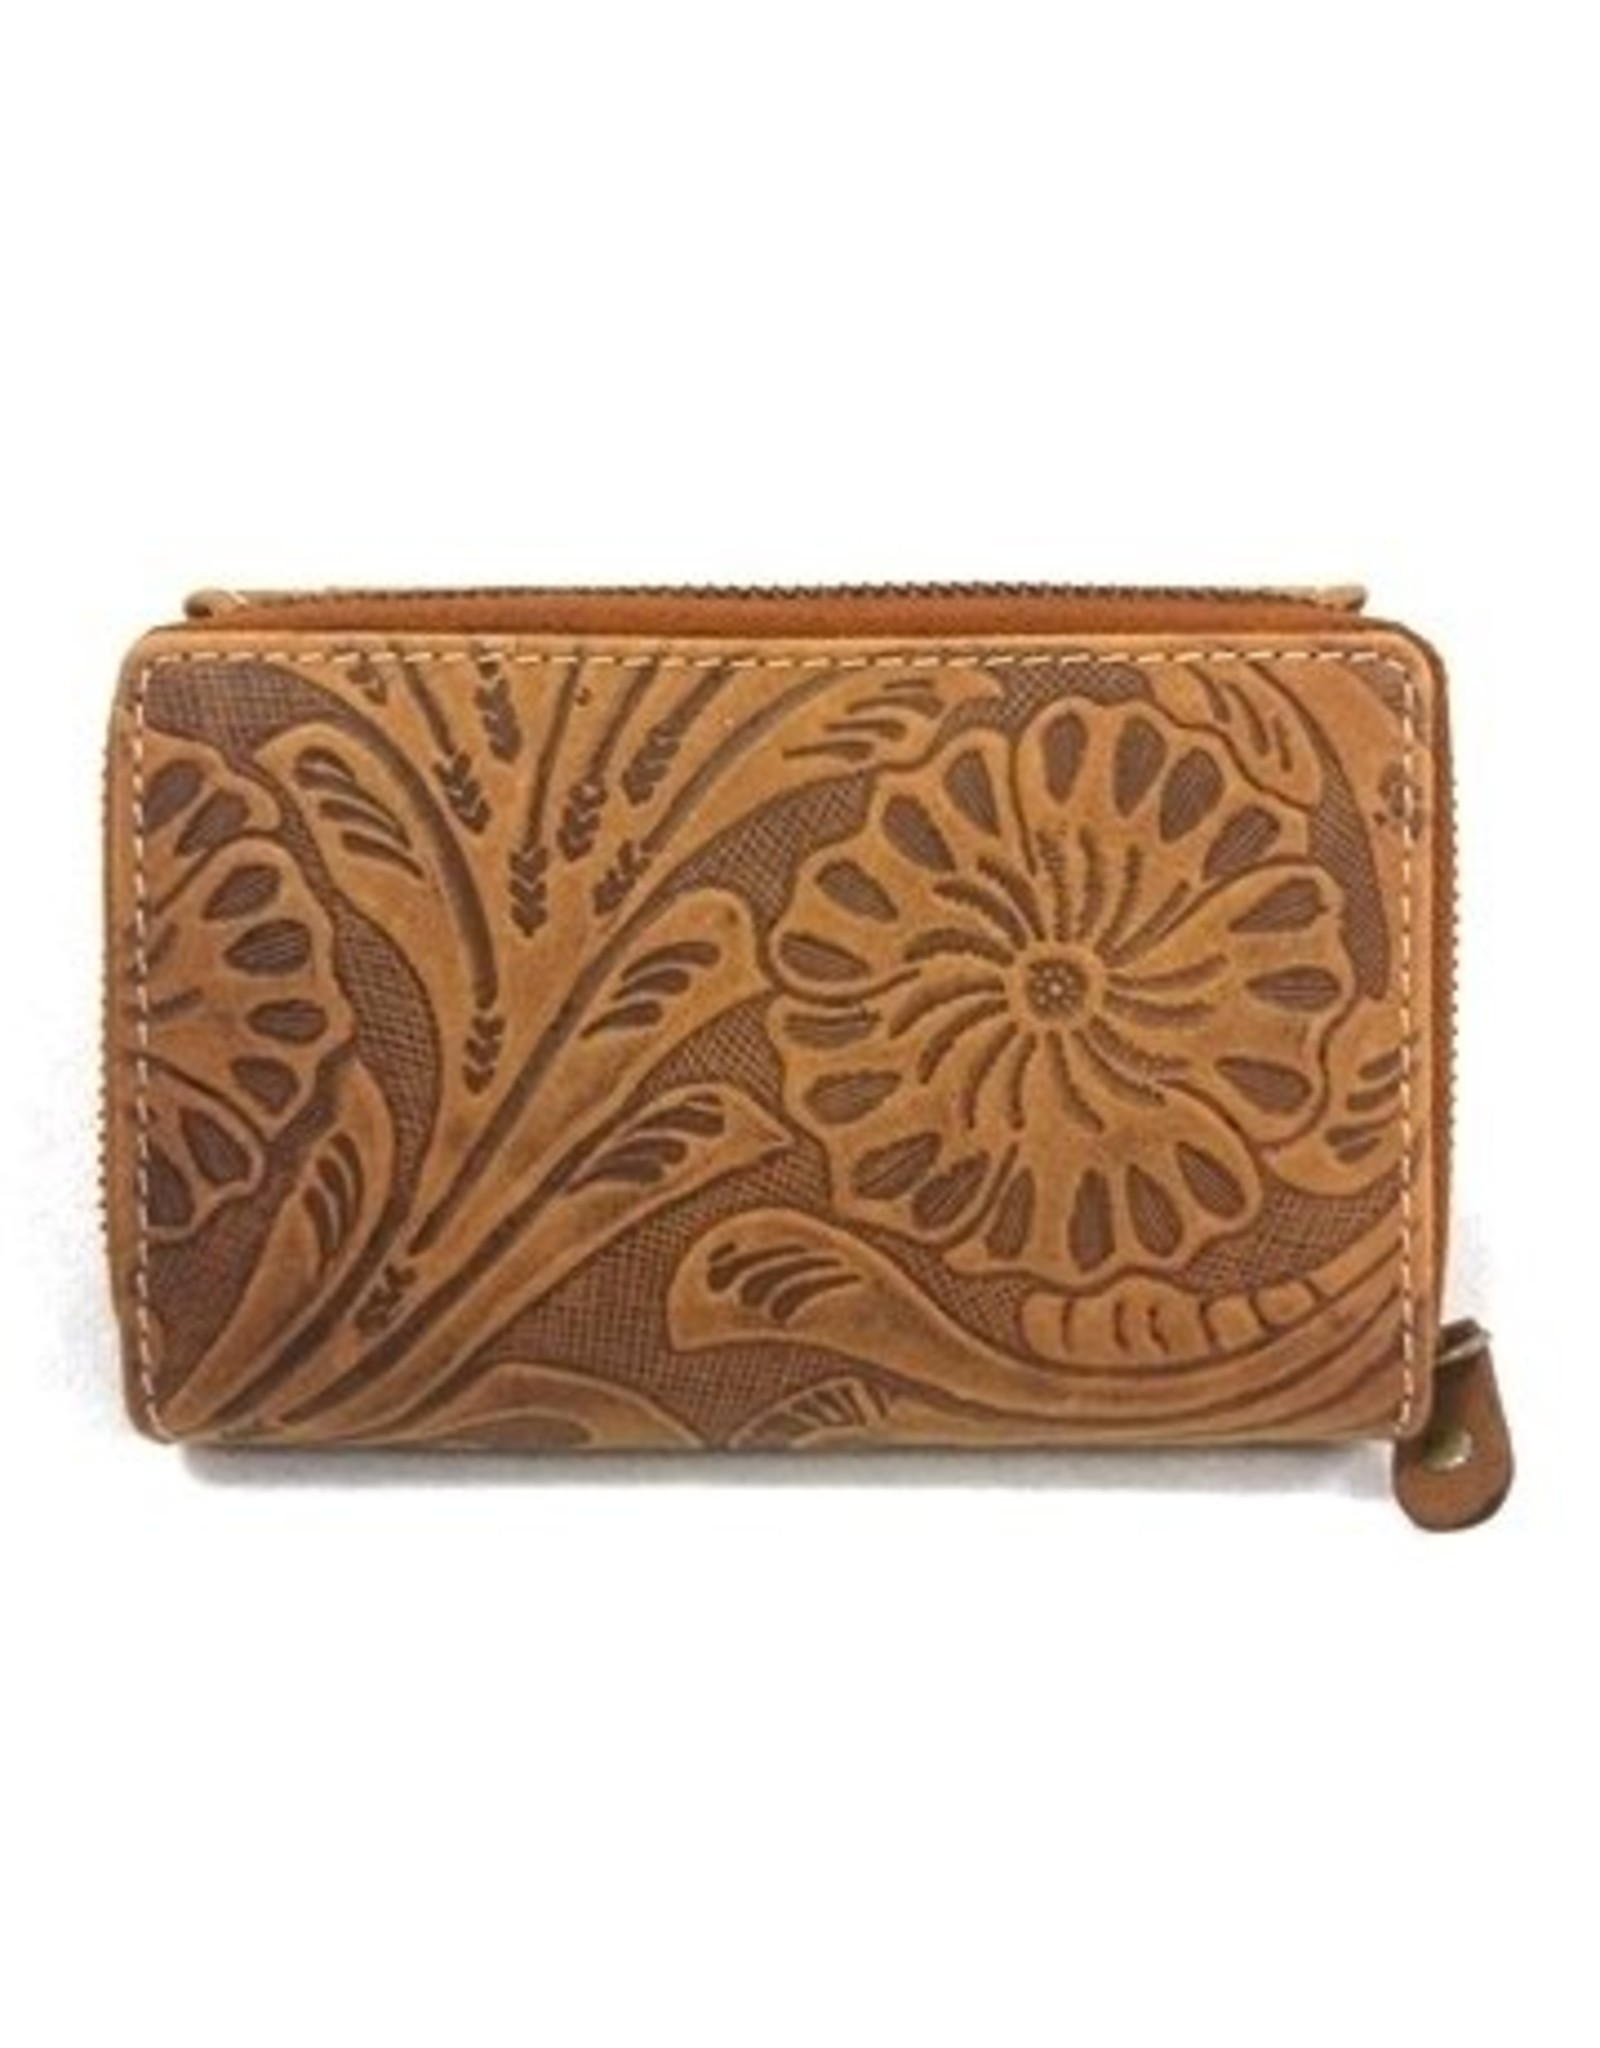 HillBurry Leather wallets - Leather wallet HillBurry 13092f-lbr